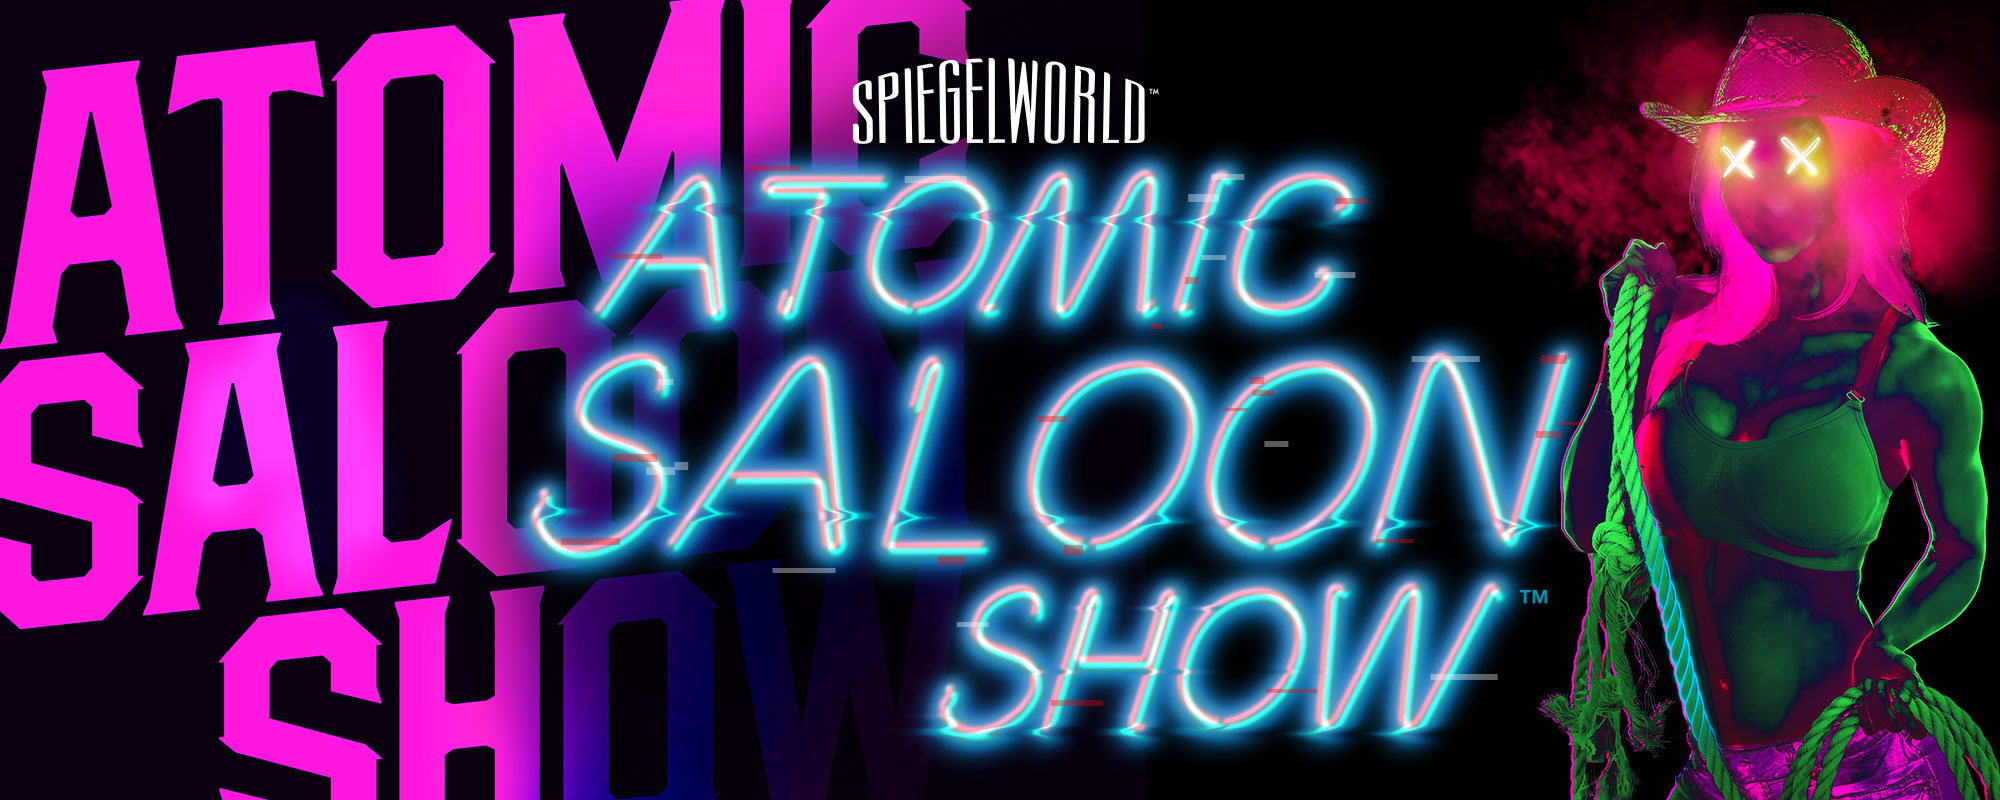 11 Ways To Get Atomic Saloon Show Discount Tickets Promo Codes 2 For 1 Our team of coupon specialists are on the look out for new uvm bookstore promos on a daily basis. 11 ways to get atomic saloon show